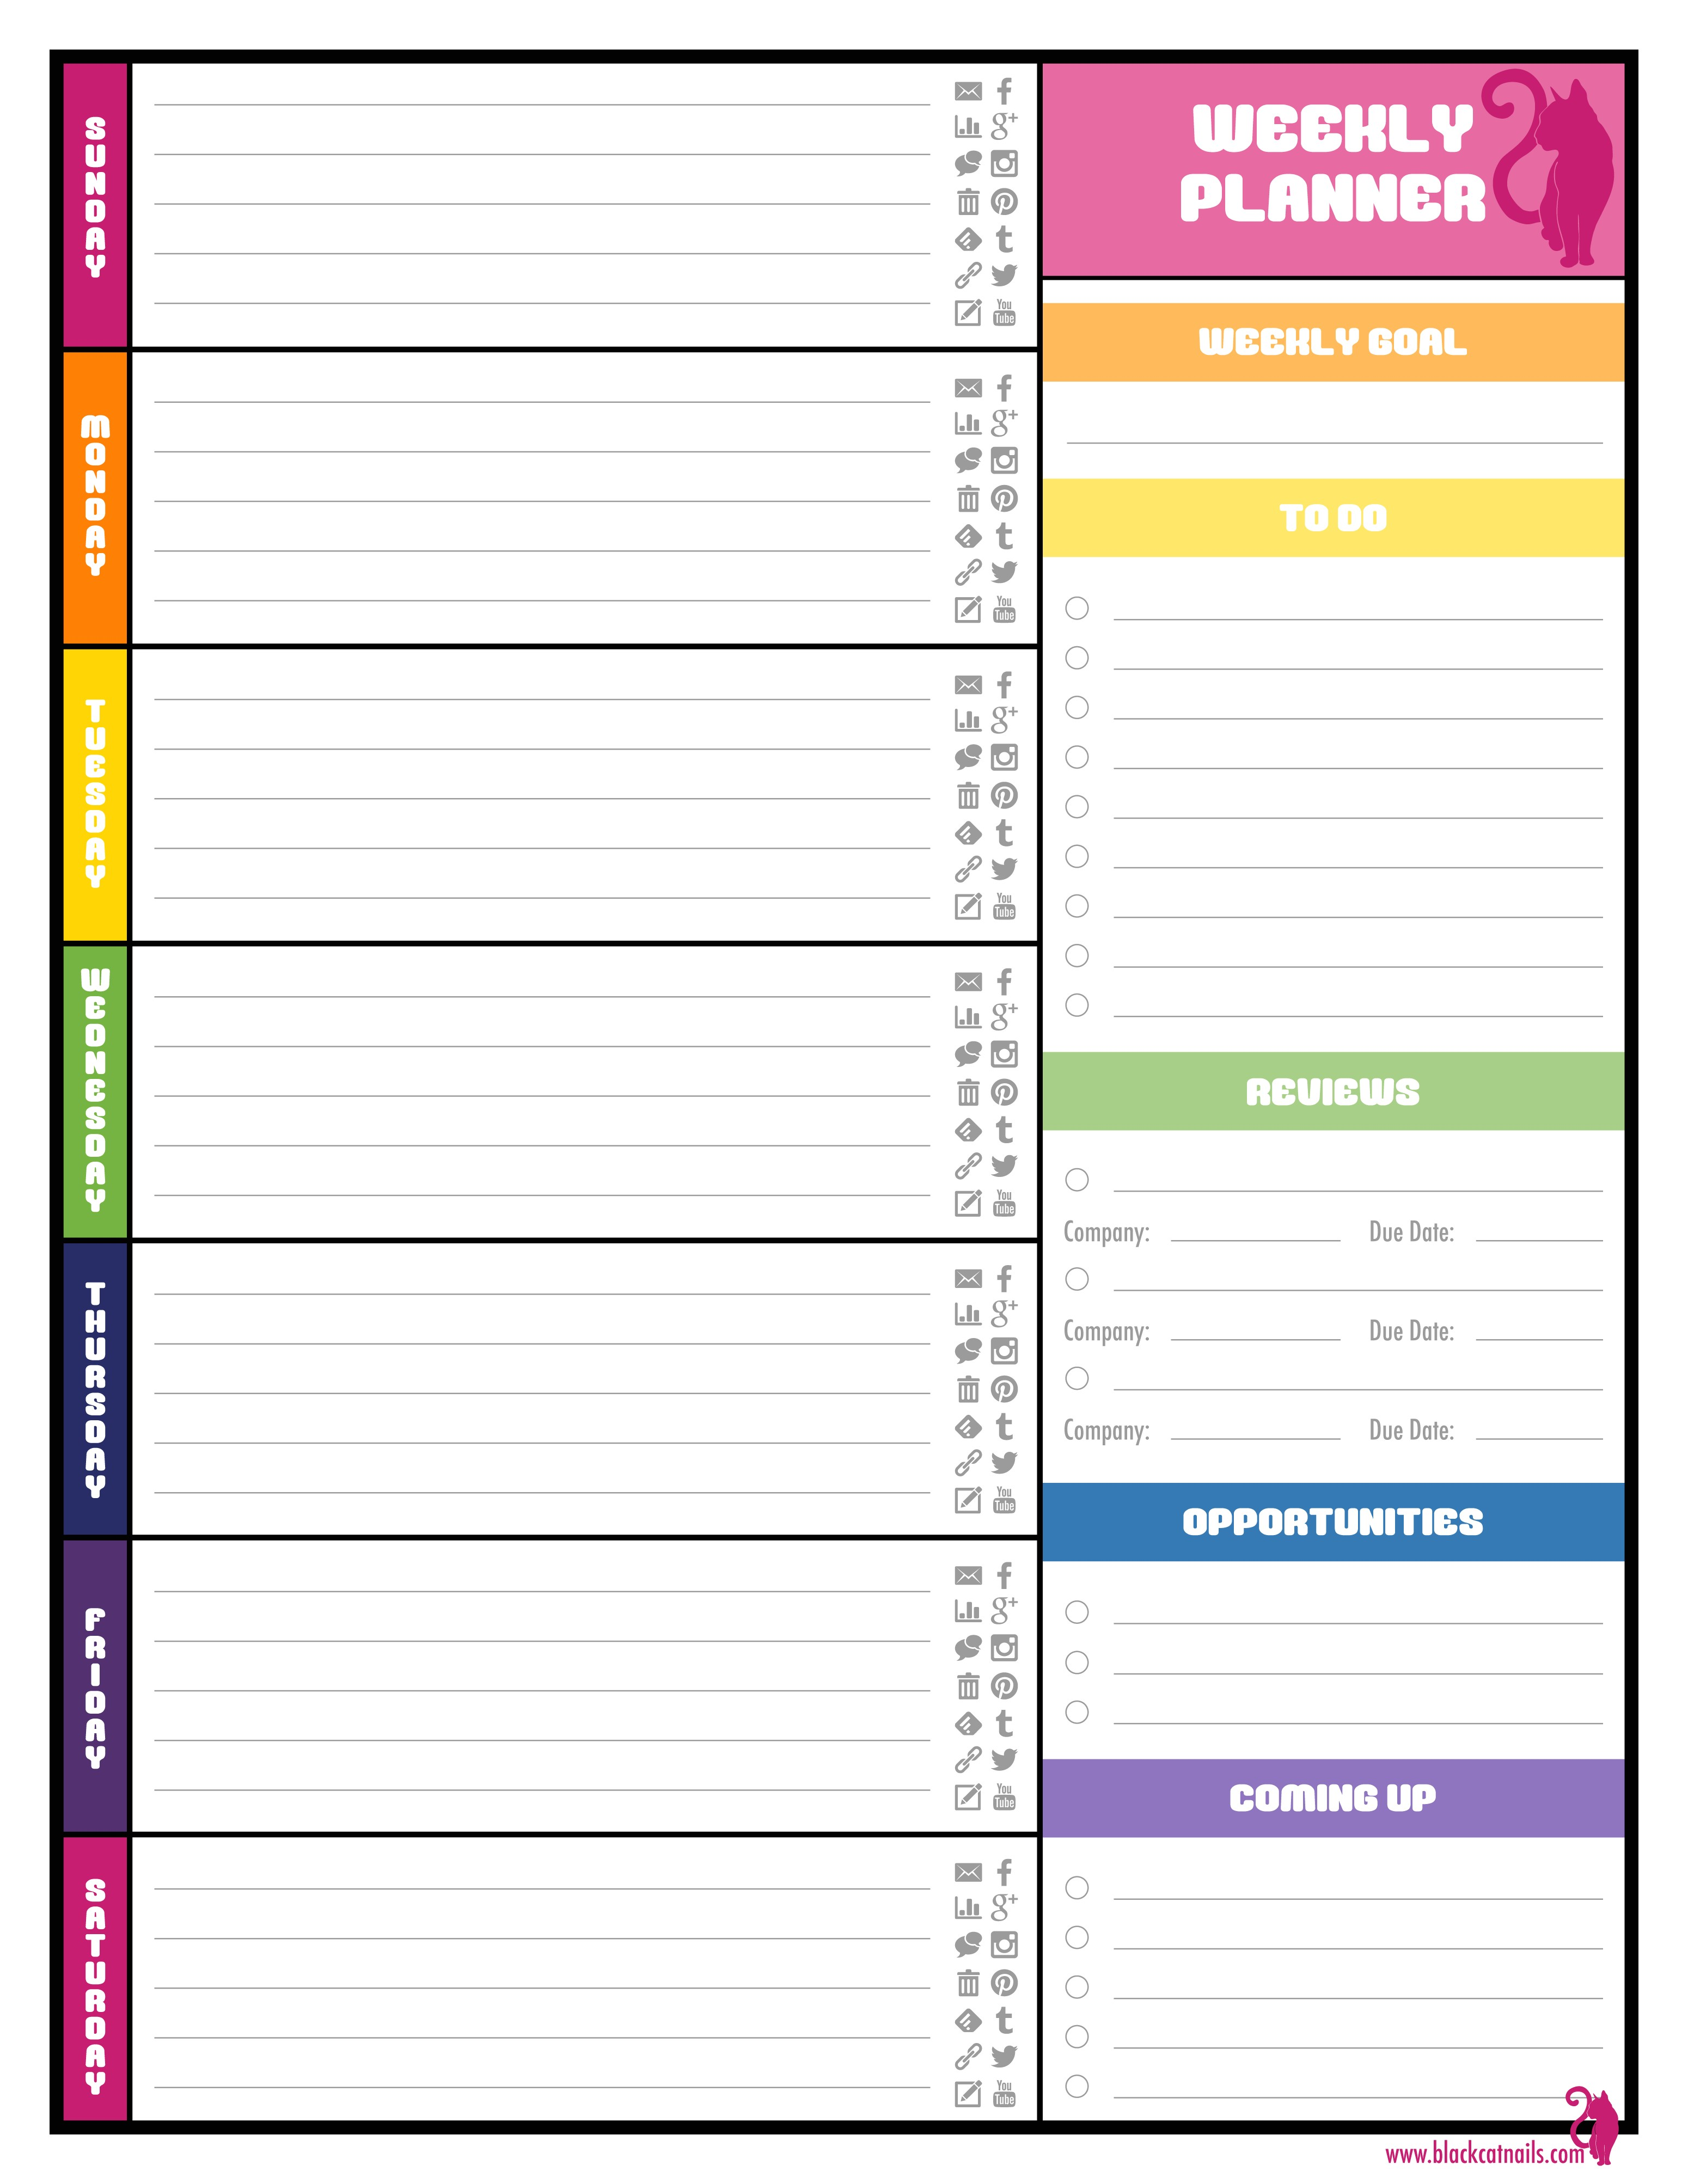 Daily Calendar to Do List Template 6 Best Images Of Printable to Do List Weekly Monthly